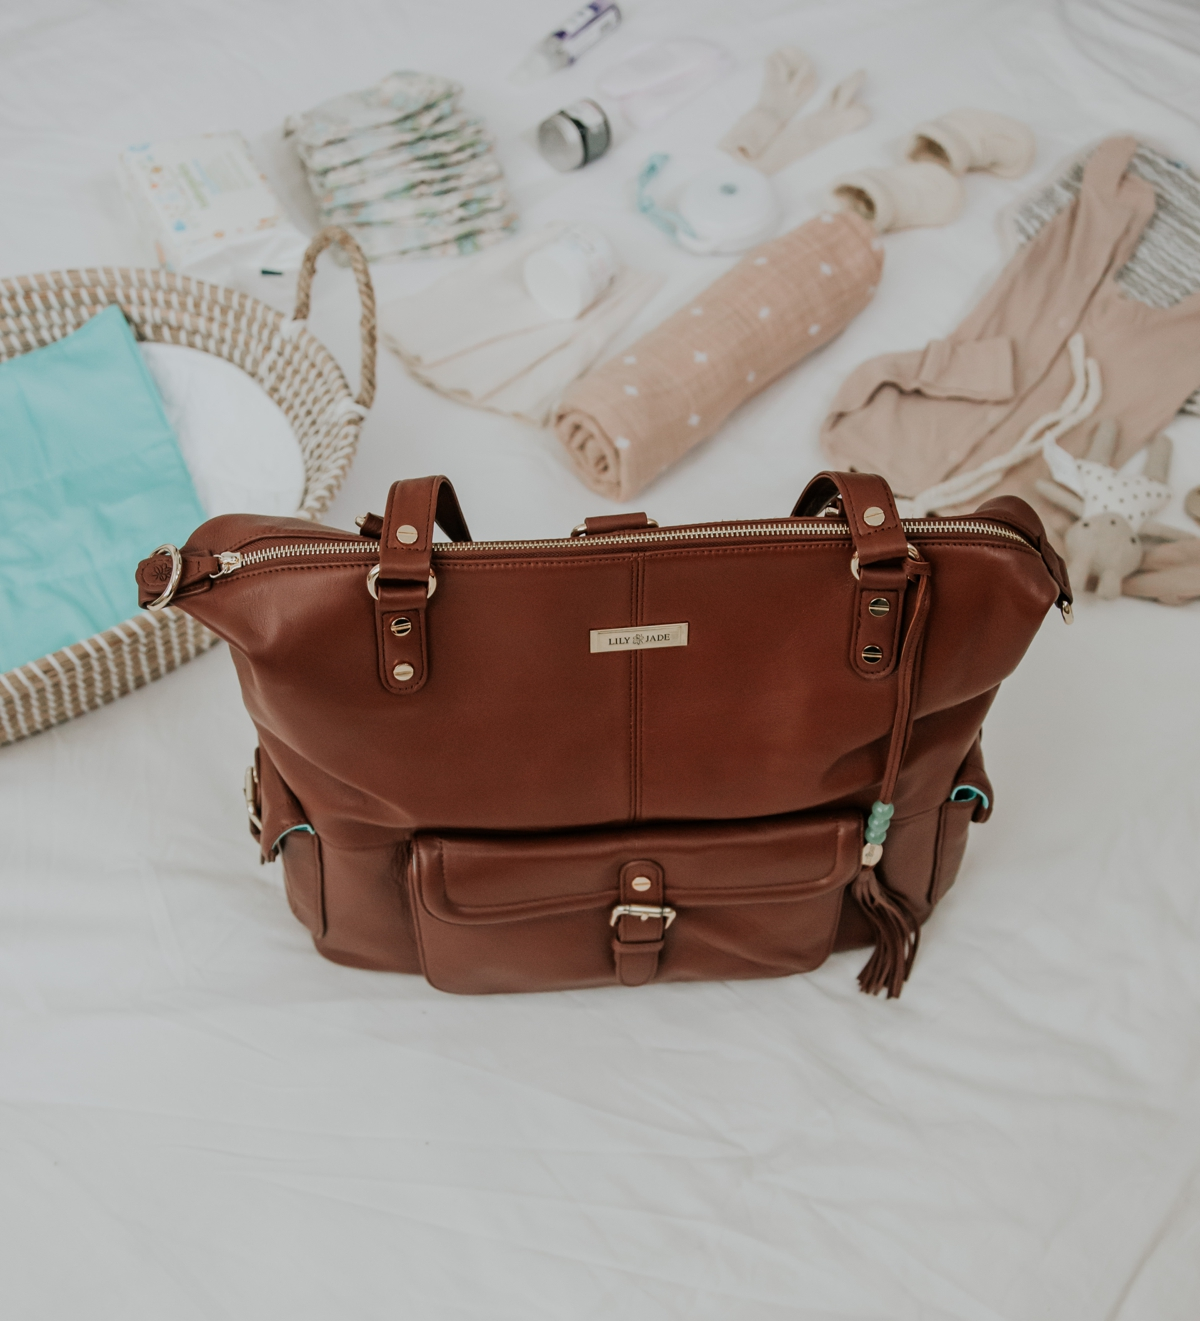 Kandis_Marino_Photography_Lifestyle_Lily_Jade_Diaper_Bag_Influencer_Abassador_Boho_Room_Home_Design_Decor_Modern_Mid_Century_Baby_Mom_Blogger_Mommy_Blog_Newborn_Pregnancy_0105.jpg